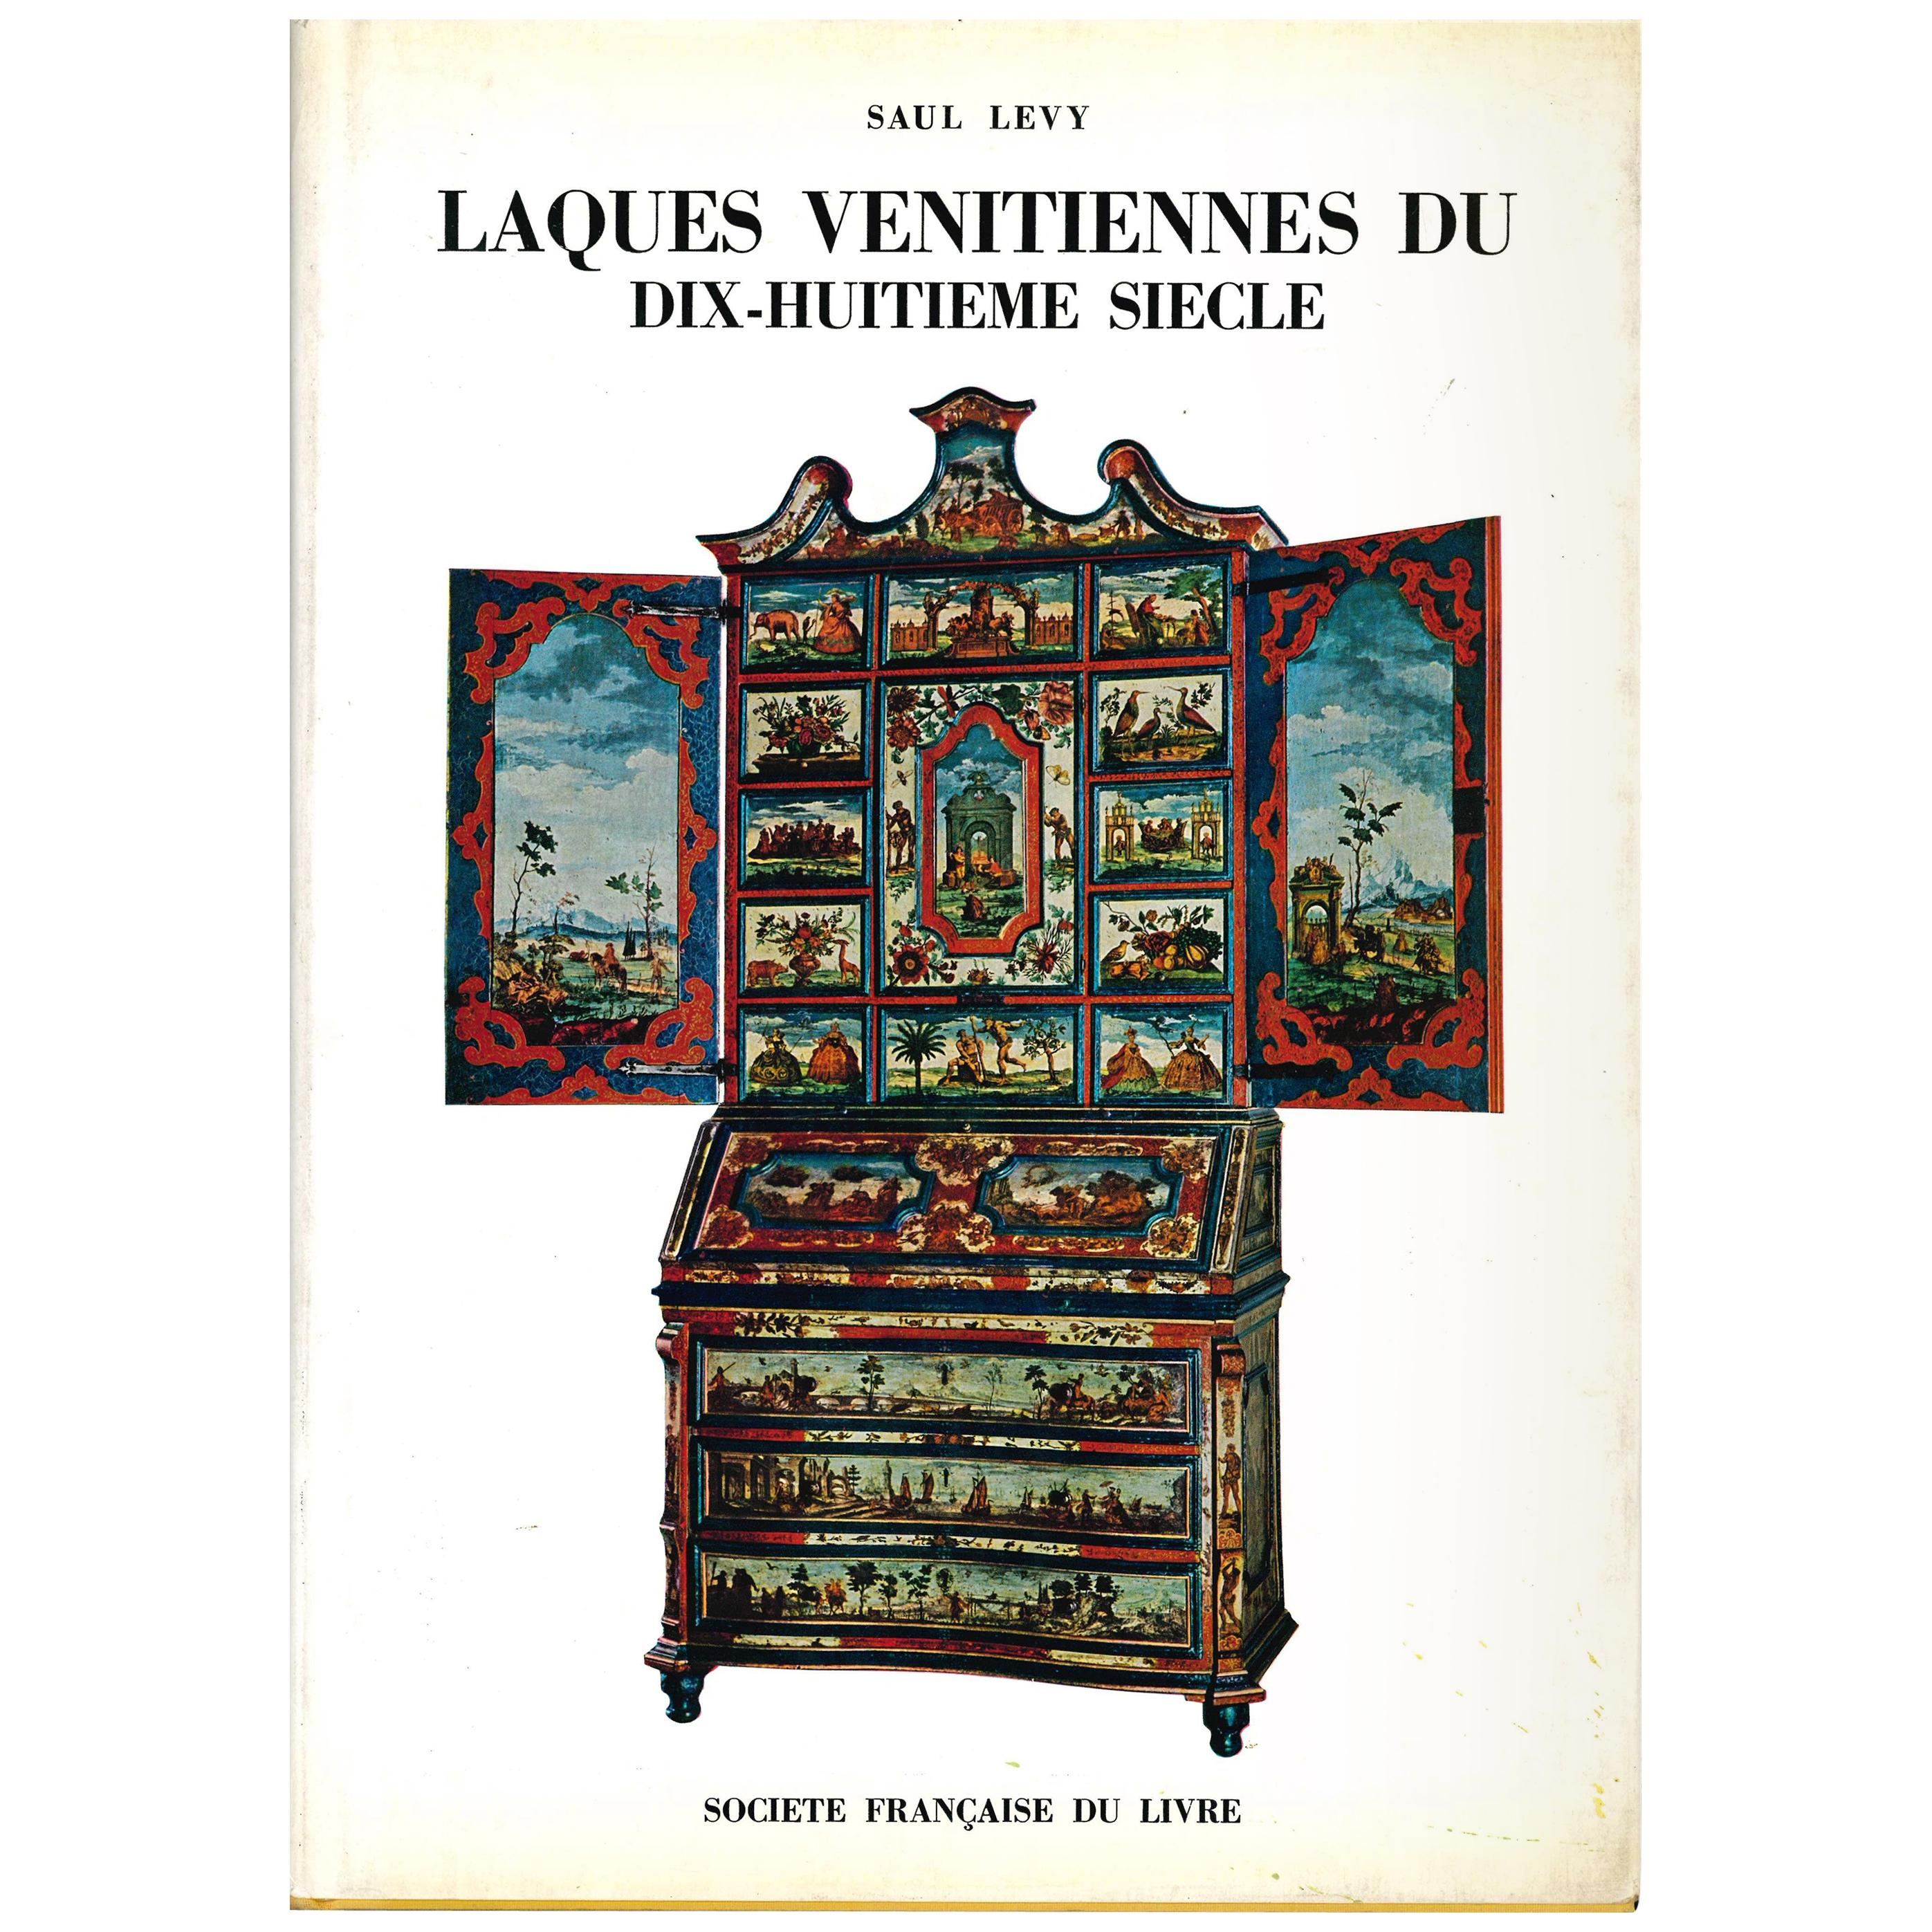 Venetian Lacquers from the 18th Century, Set of 2 Books by Saul Levy